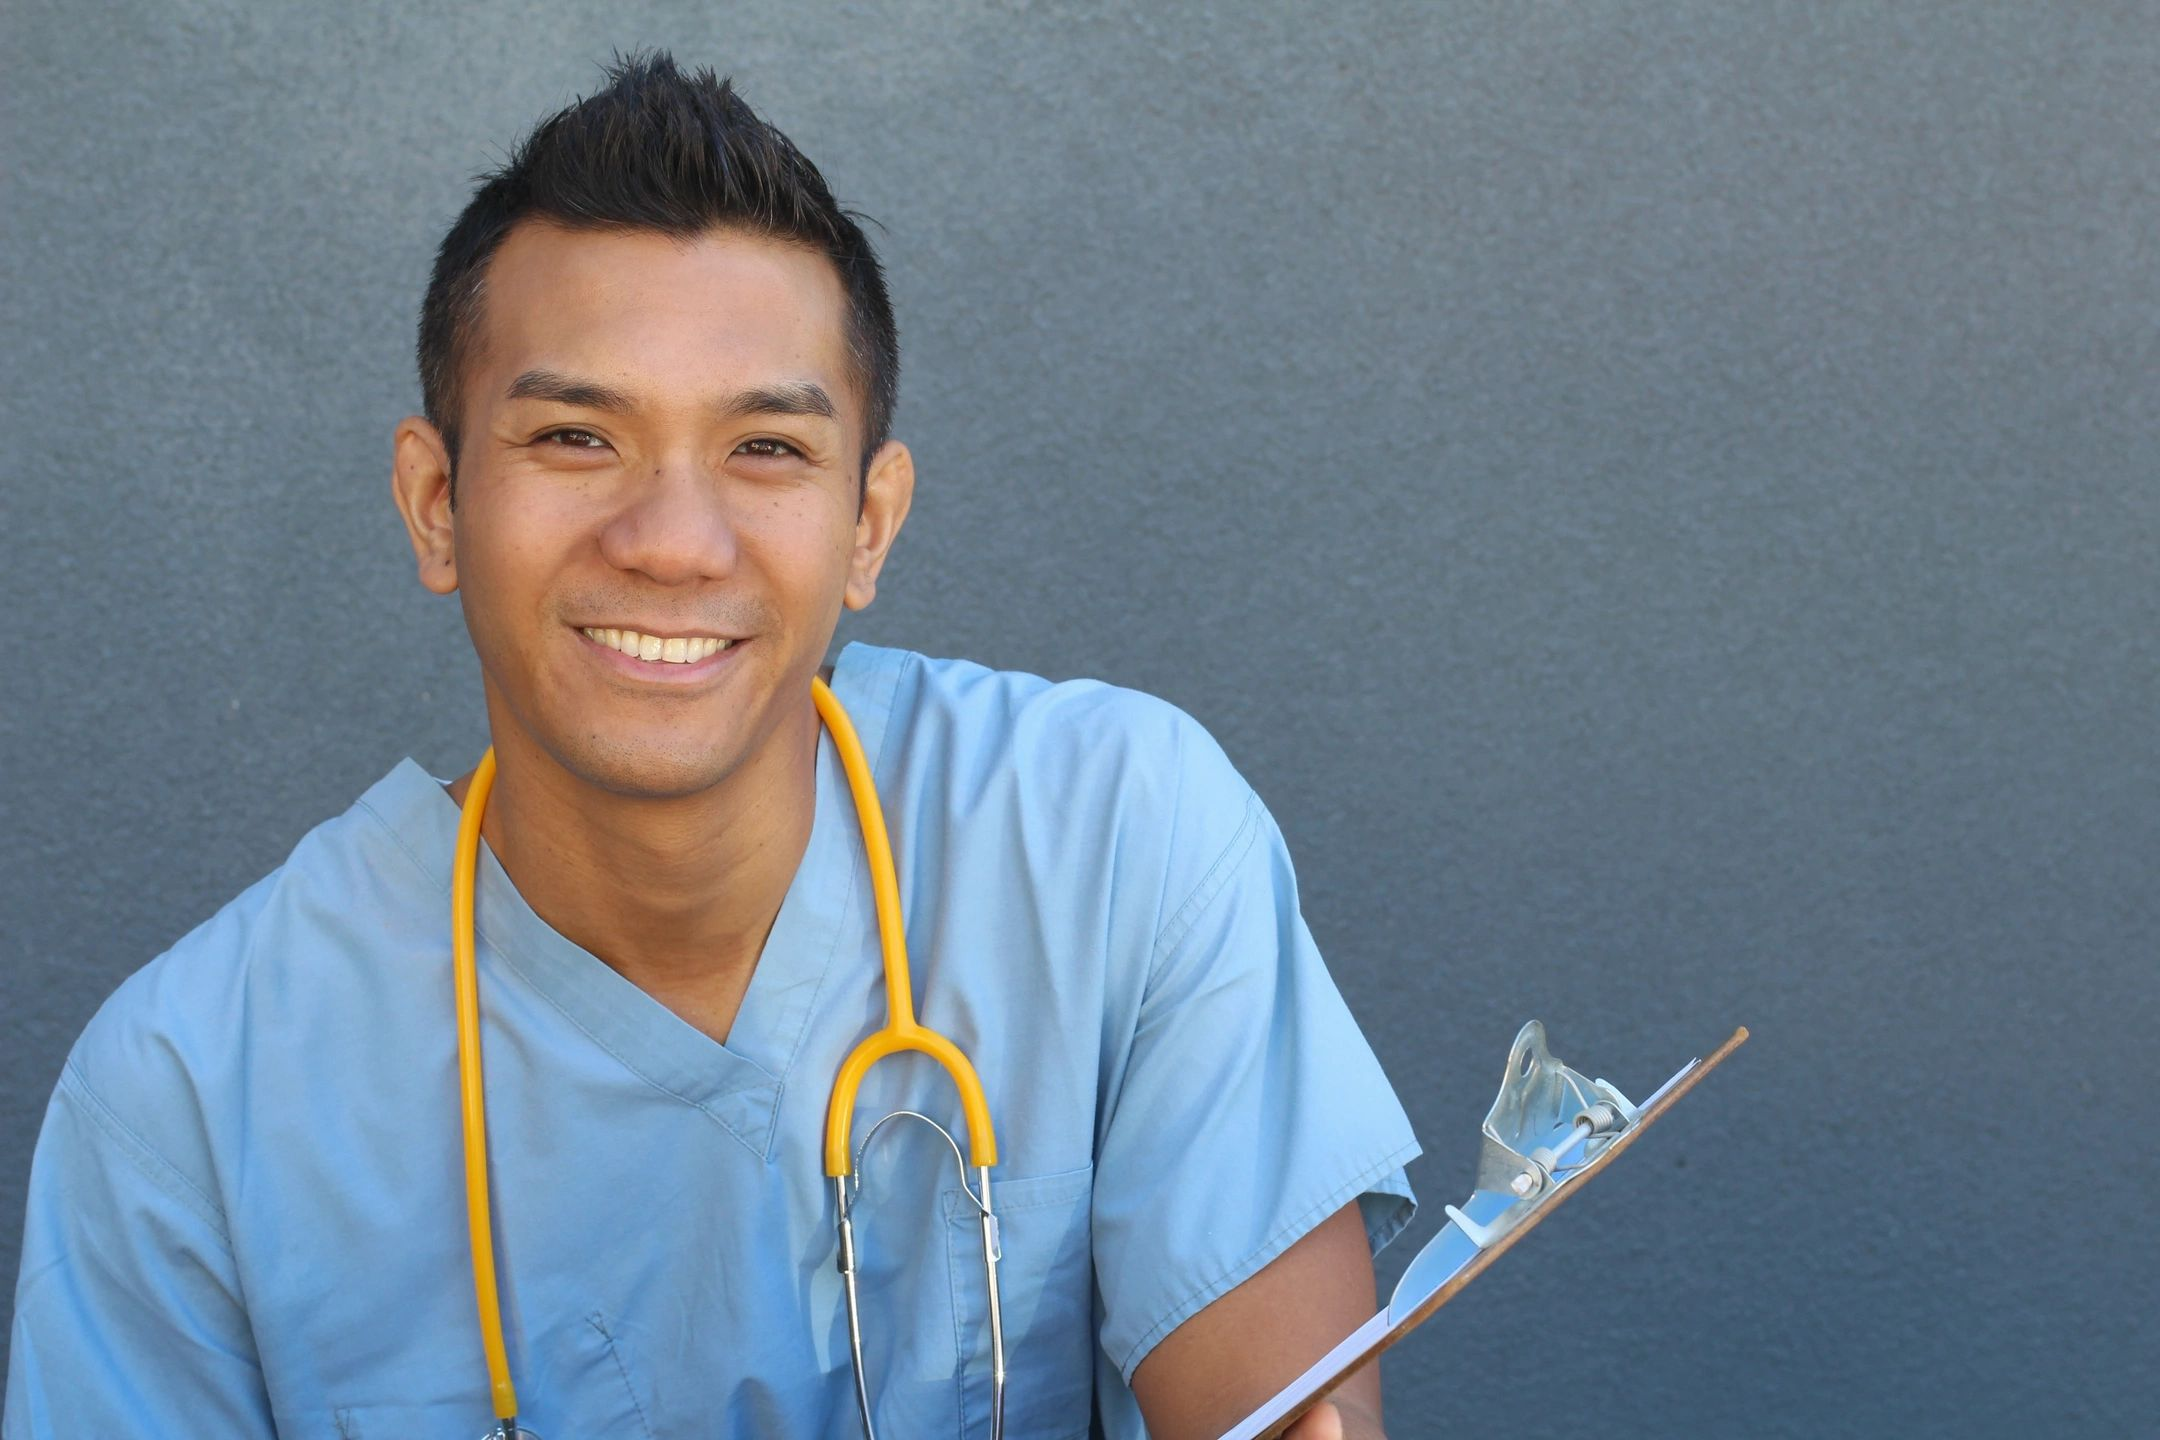 Man in blue scrubs with a clipboard